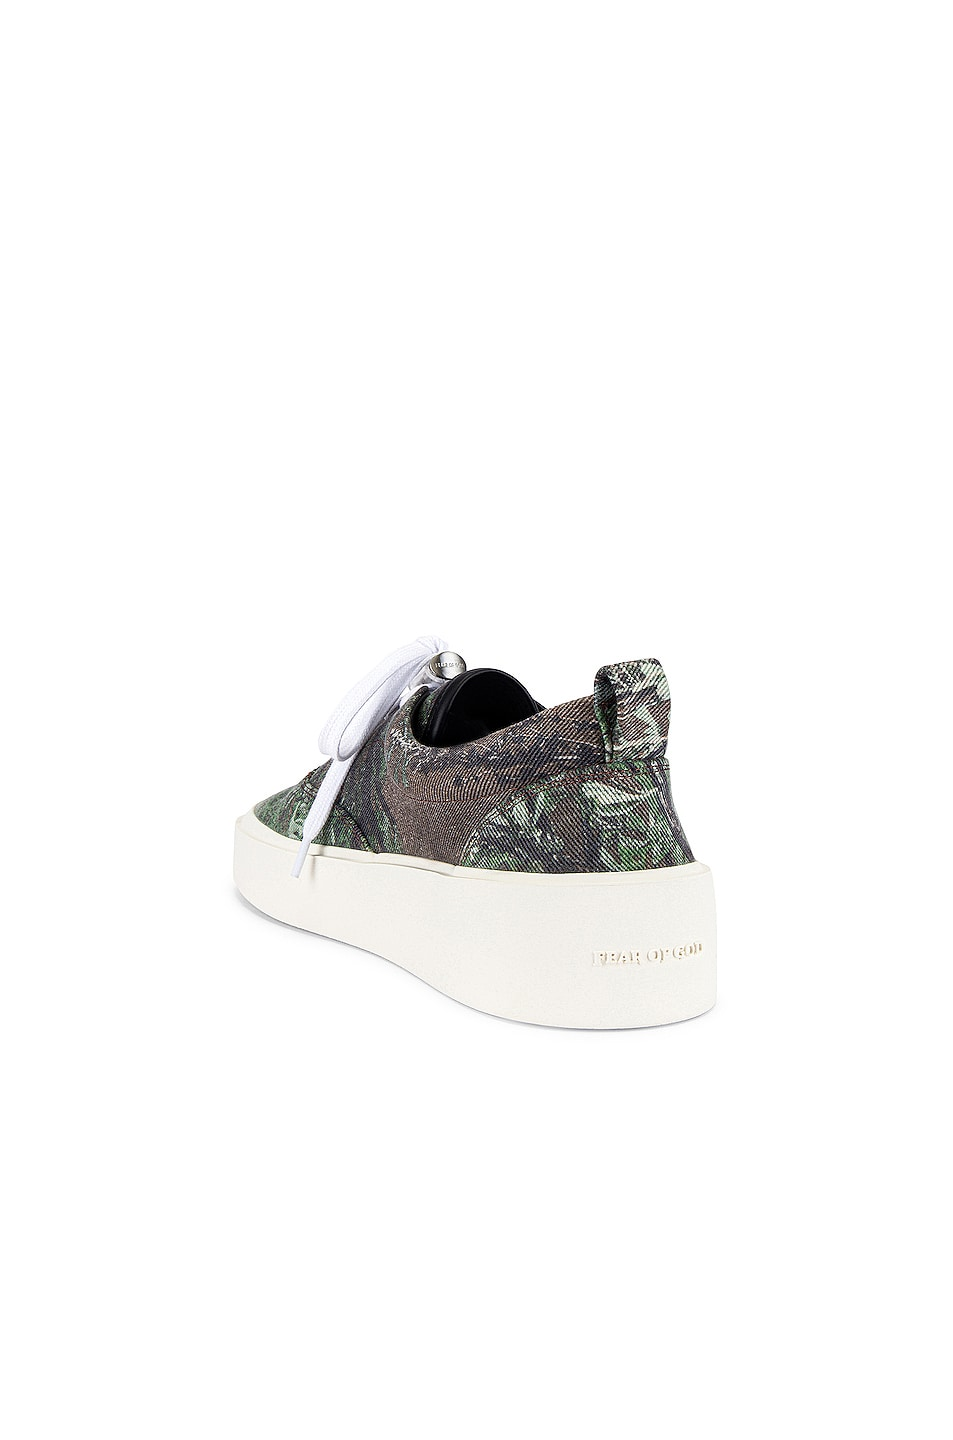 Image 3 of Fear of God 101 Lace Up Sneaker in Dark Prairie Ghost Camo